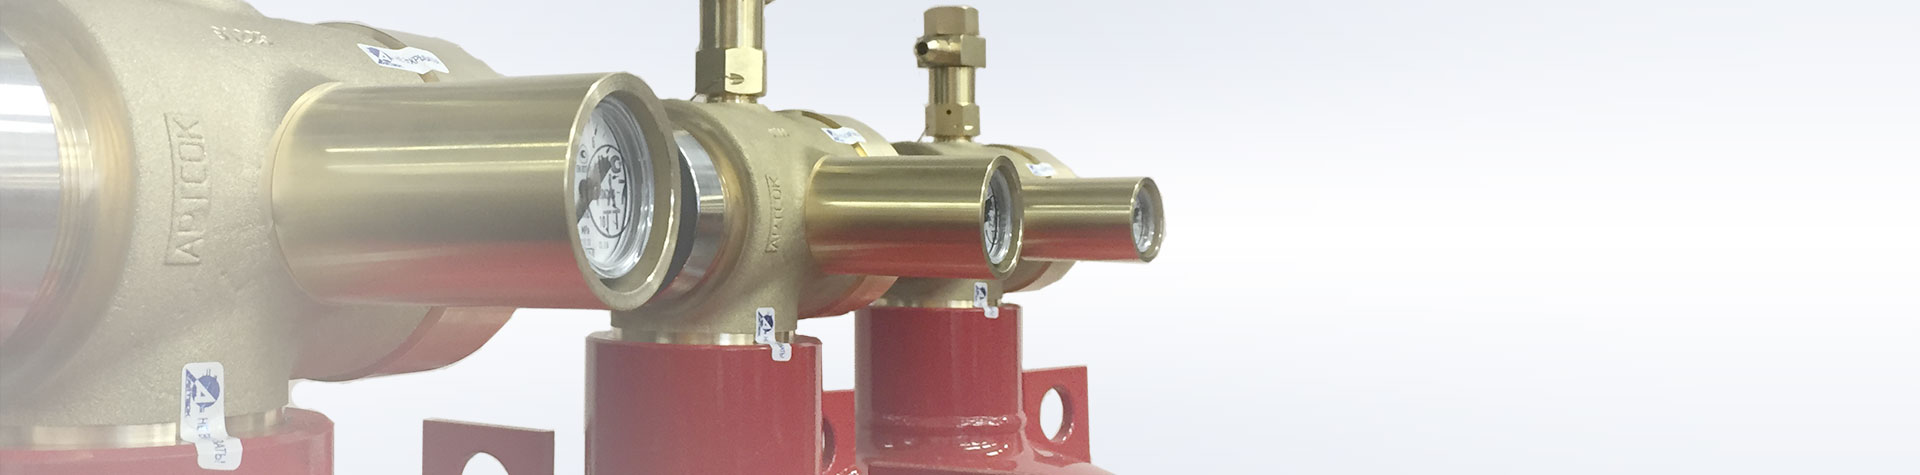 Production, development, design, supply, installation and maintenance of fire extinguishing systems